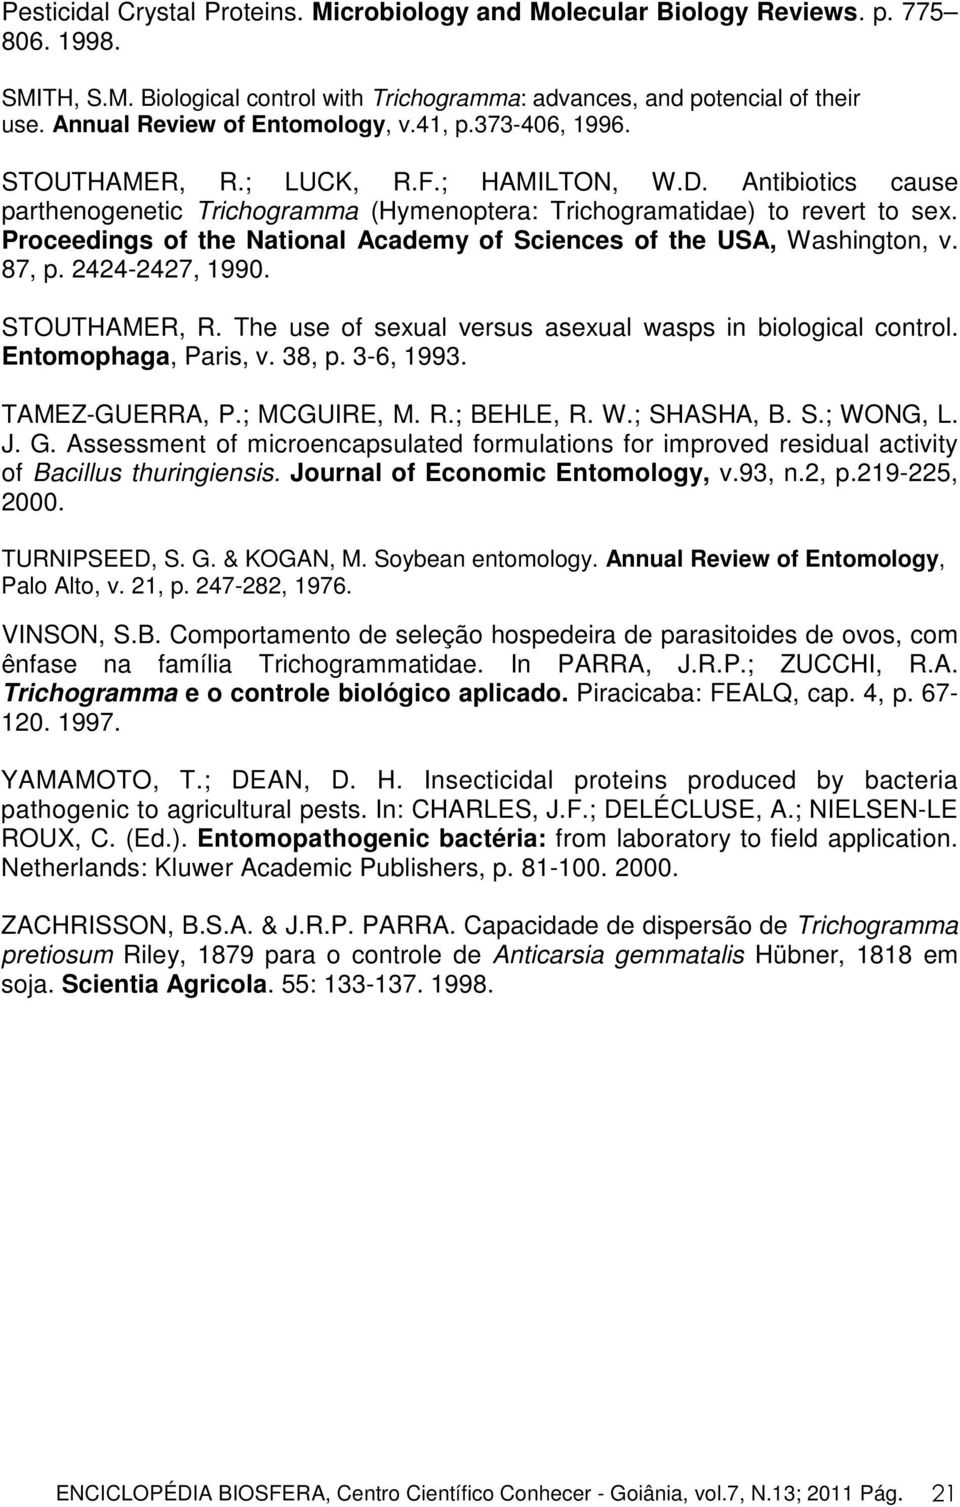 Proceedings of the National Academy of Sciences of the USA, Washington, v. 87, p. 2424-2427, 1990. STOUTHAMER, R. The use of sexual versus asexual wasps in biological control. Entomophaga, Paris, v.